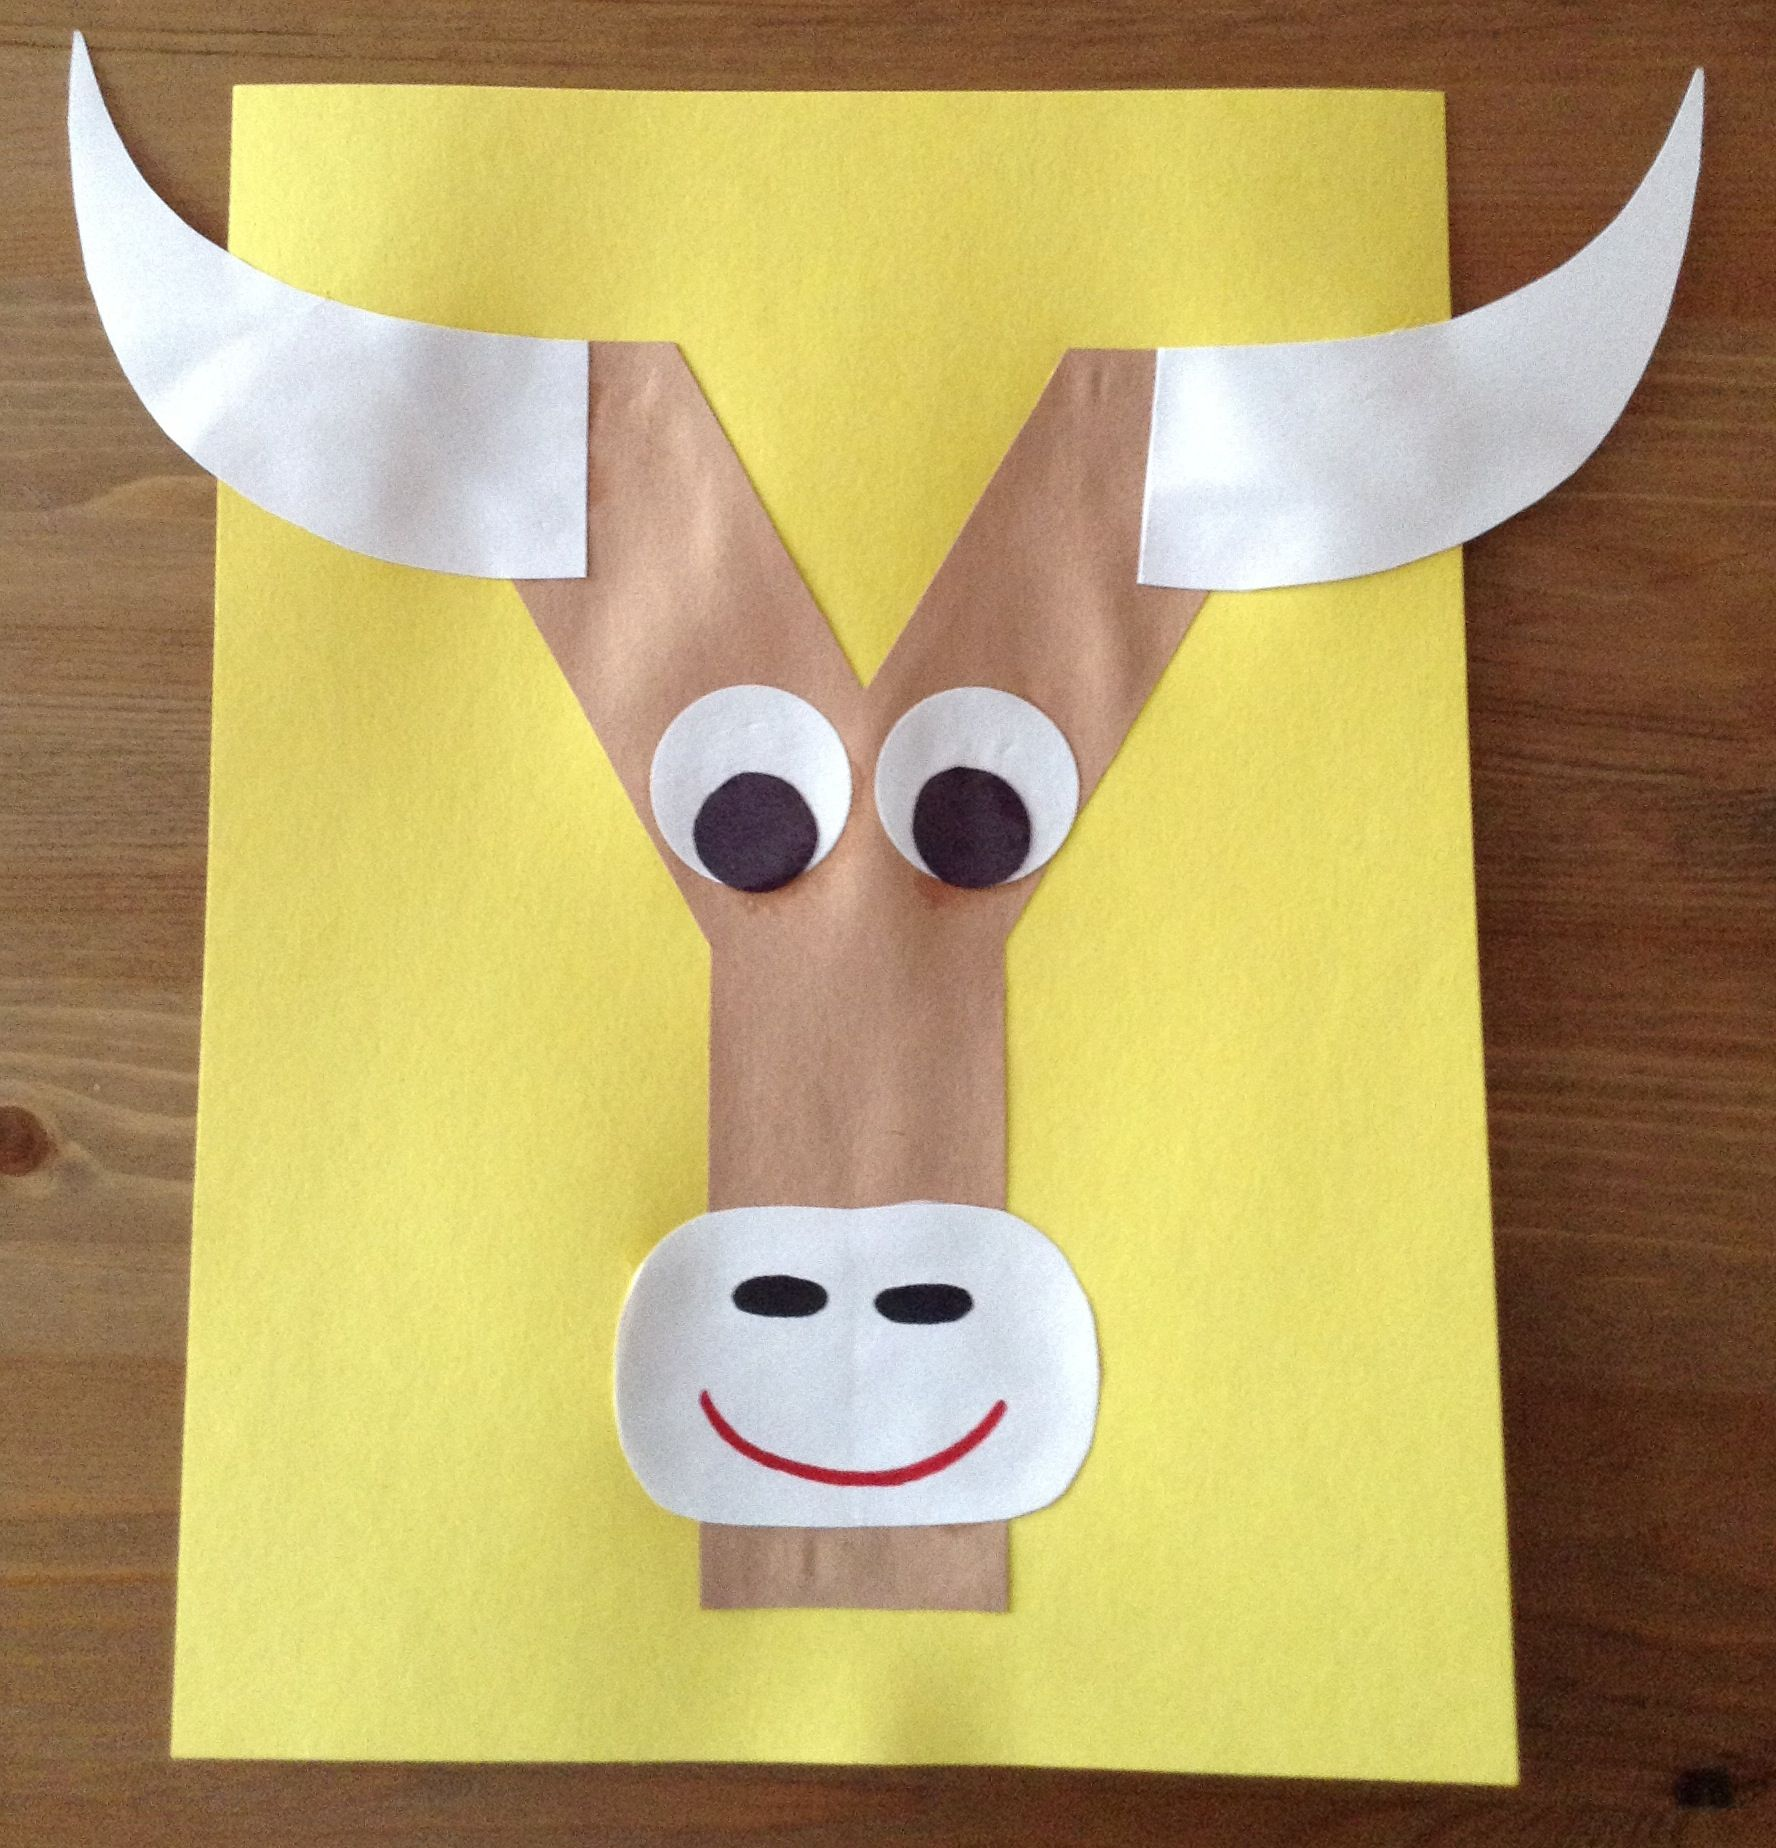 Animals crafts for preschoolers - Y Is For Yak Craft Preschool Craft Letter Of The Week Craft Kids